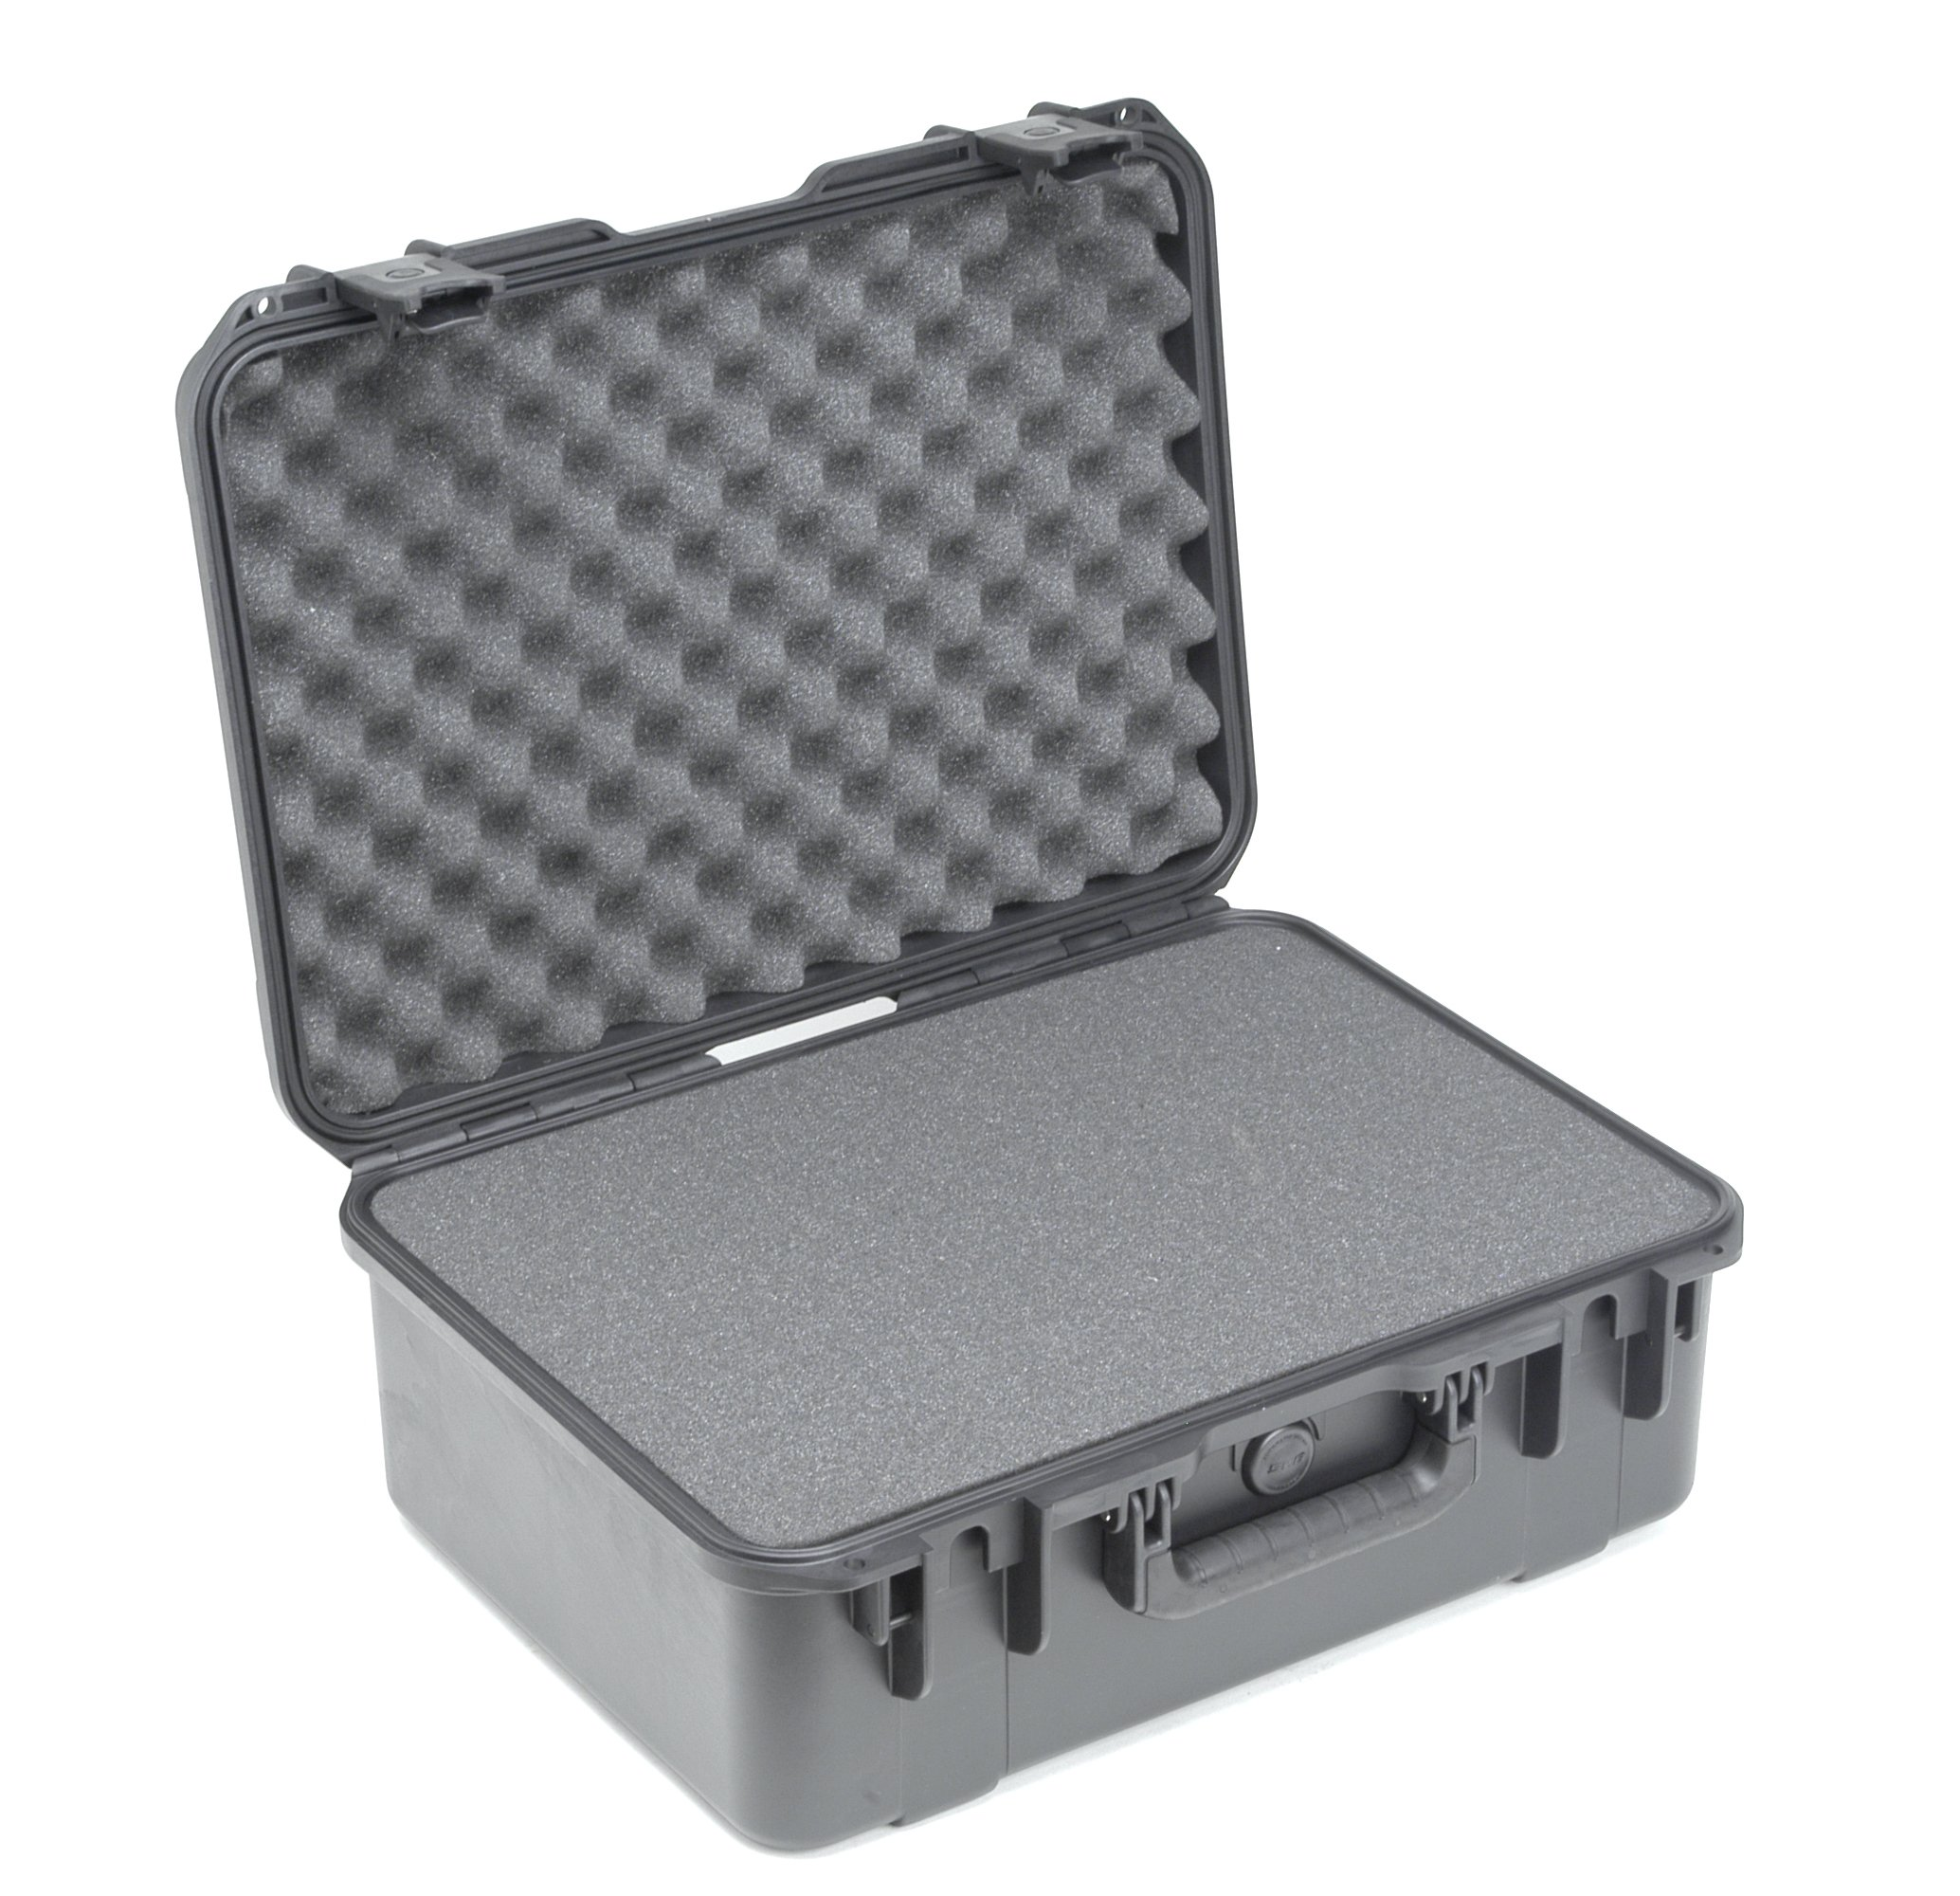 SKB Injection Molded Cubed Foam Equipment Case (18.5 x 13 x 7-Inch)